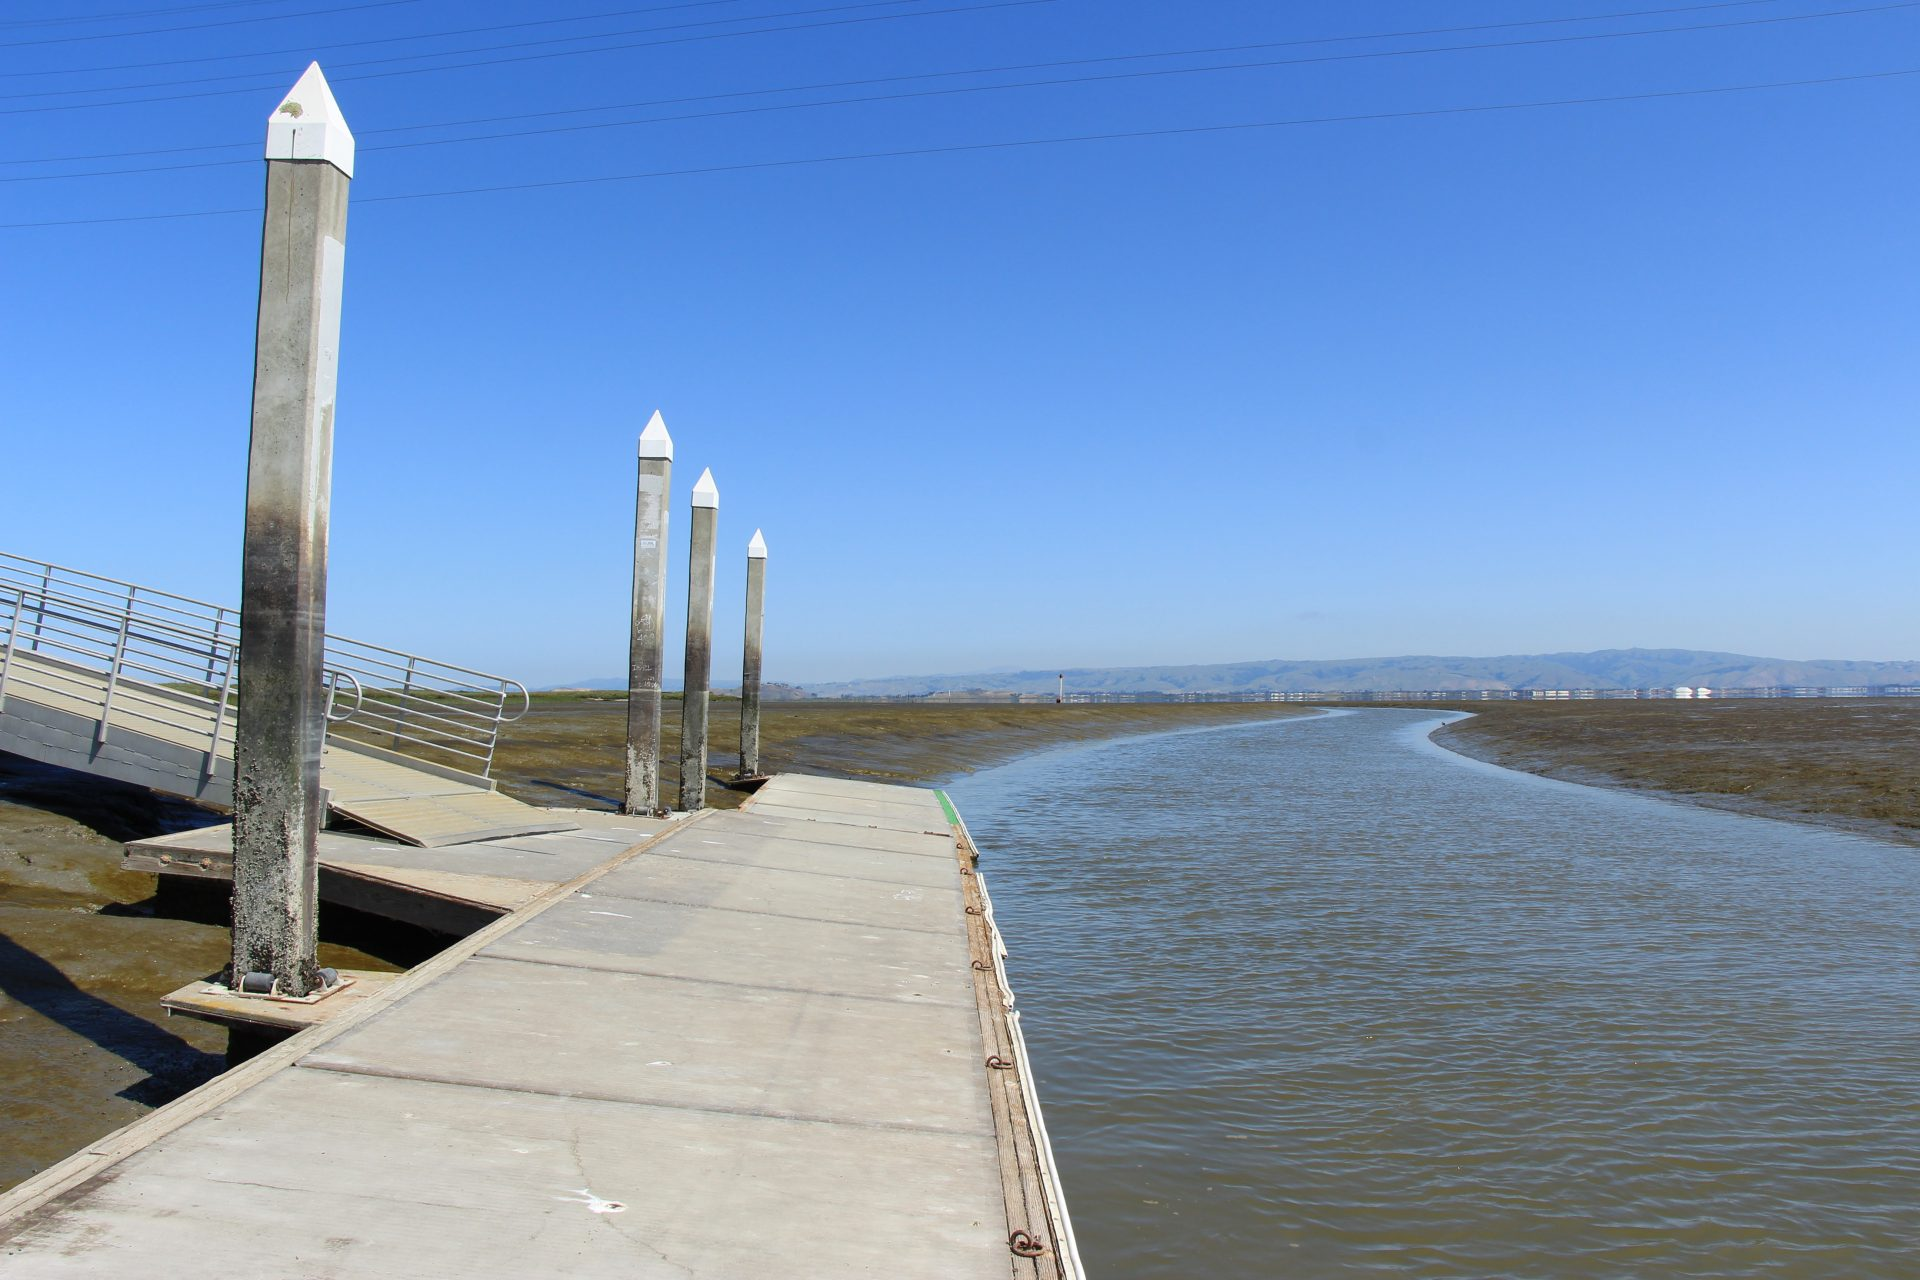 floating dock in a narrow channel with mudflats exposed at low tide